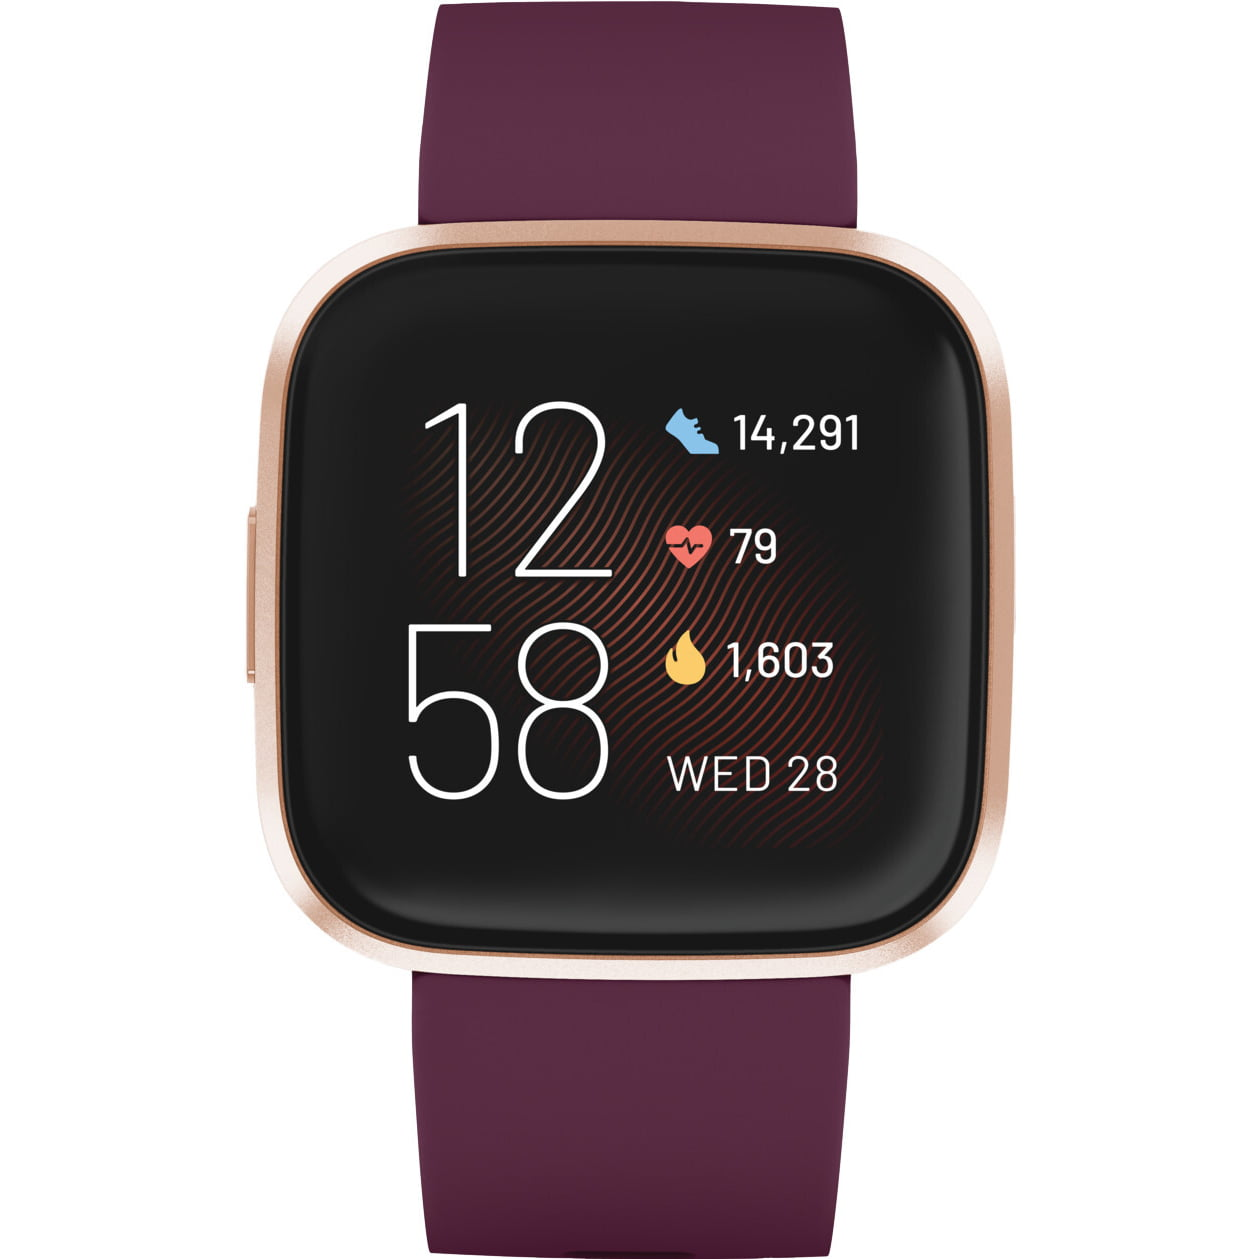 Ceas Smartwatch Fitbit Versa 2, NFC, HR, Silicon, Copper Rose Aluminum, Curea Bordeaux